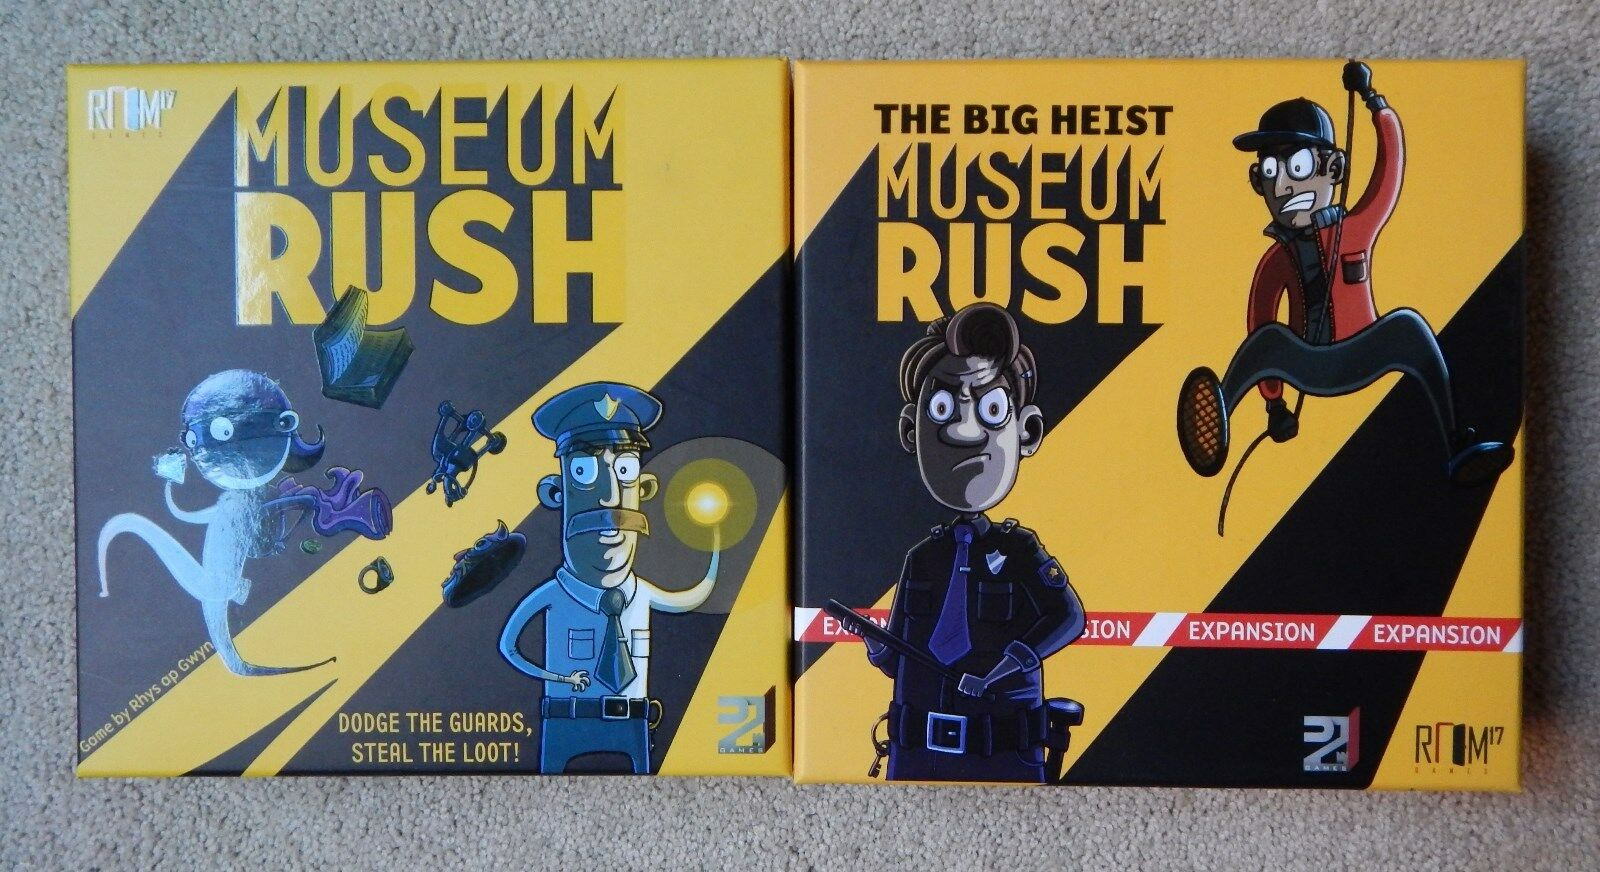 MUSEUM RUSH, BIG HEIST & EGYPTIAN EXHIBIT EXPANSIONSBRAND NEW (MONOPOLY)L@@K